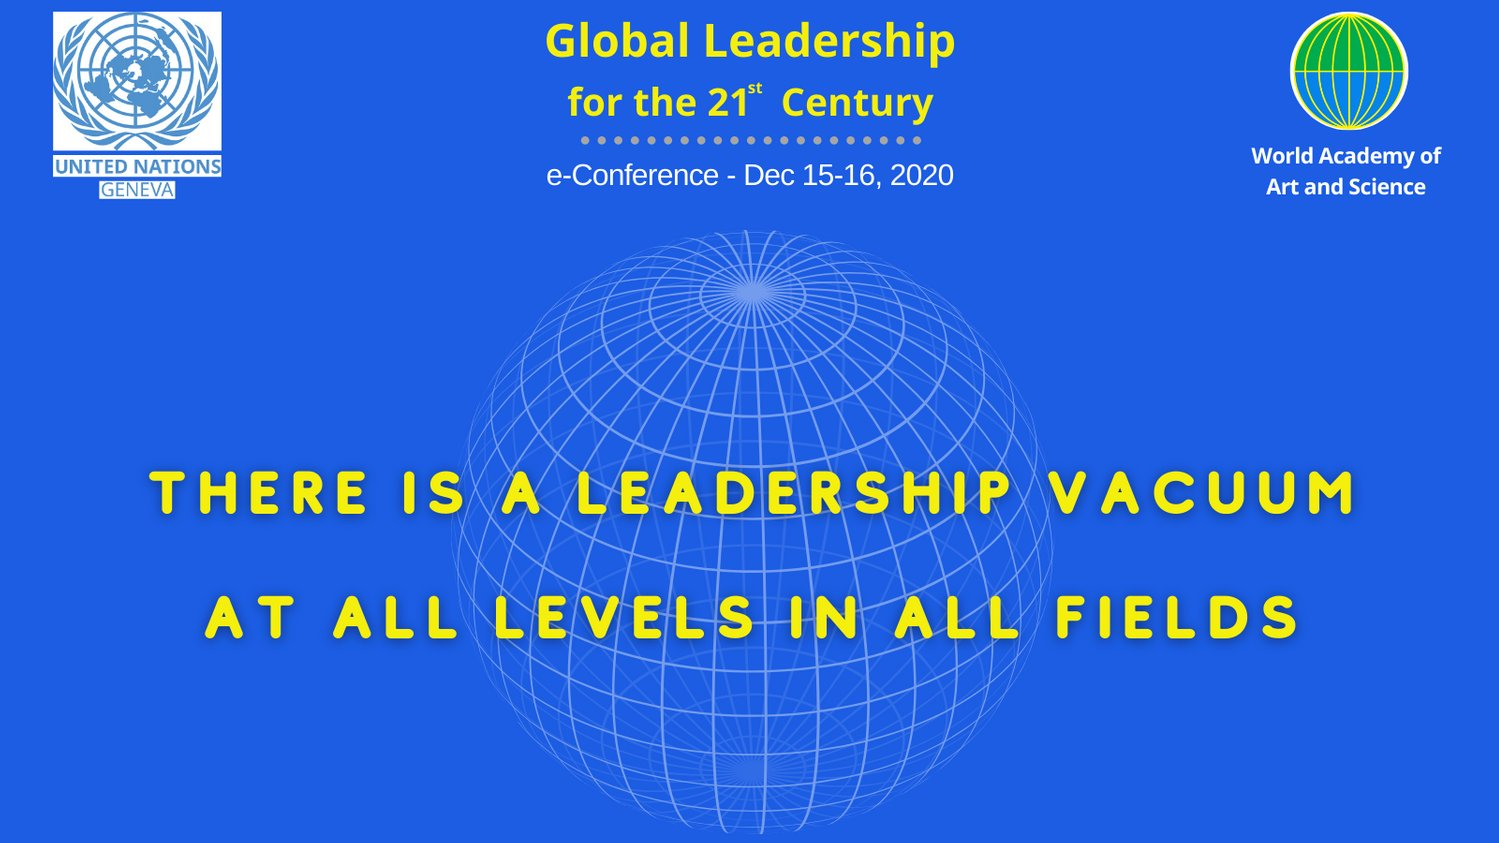 GLOBAL LEADERSHIP FOR THE 21ST CENTURY, a joint initiative of the United Nations Office at Geneva and the World Academy of Art & Science